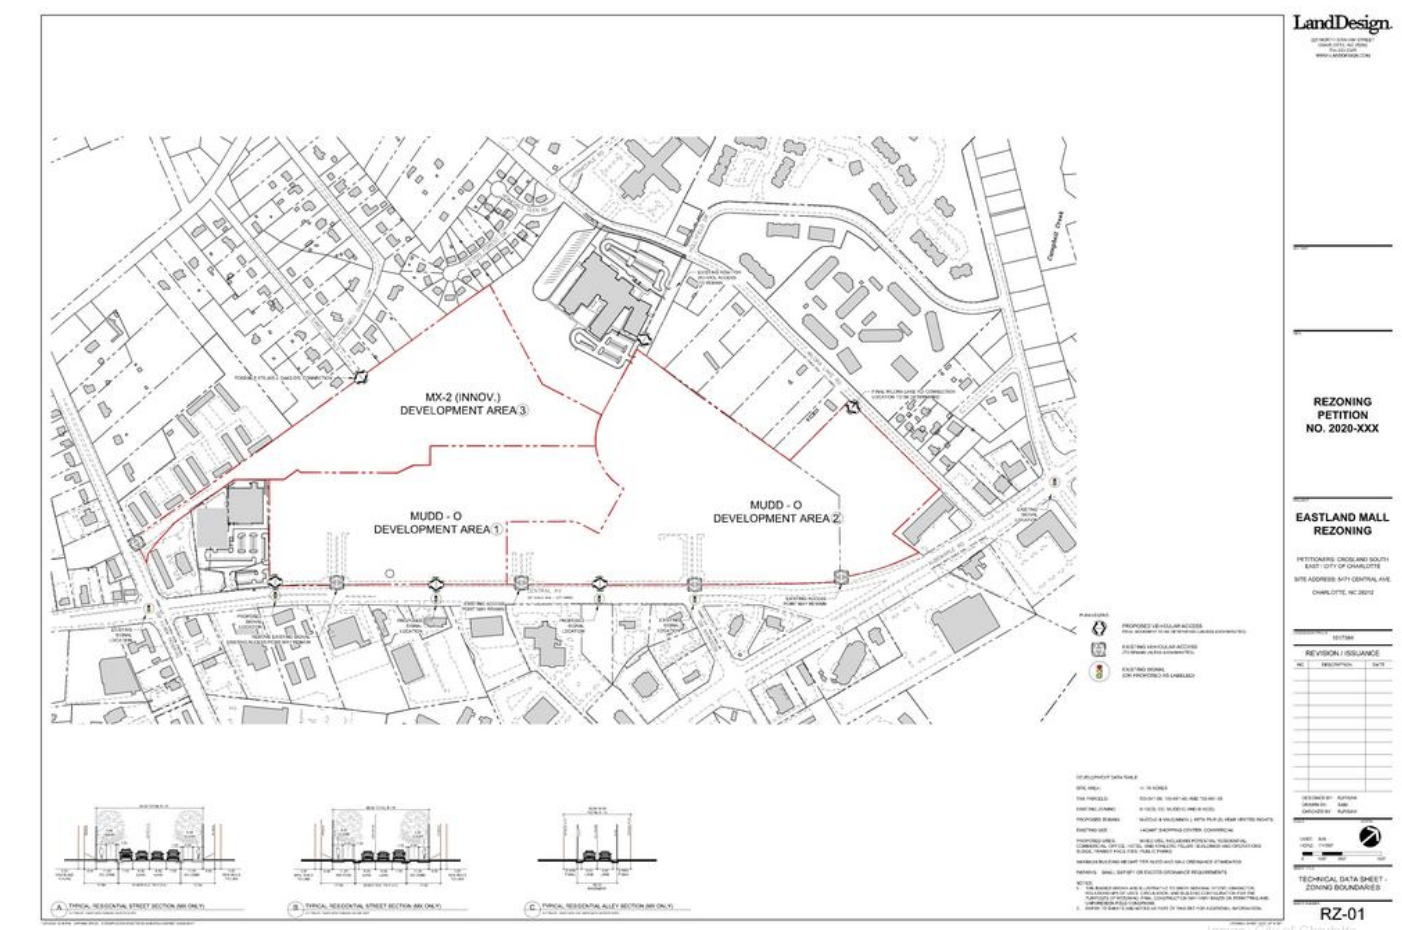 The petition calls for three primary development areas across 78 acres to be rezoned to MX-2, which permits residential mixed-use development, and MUDD-O, or mixed-use development district with optional provisions.